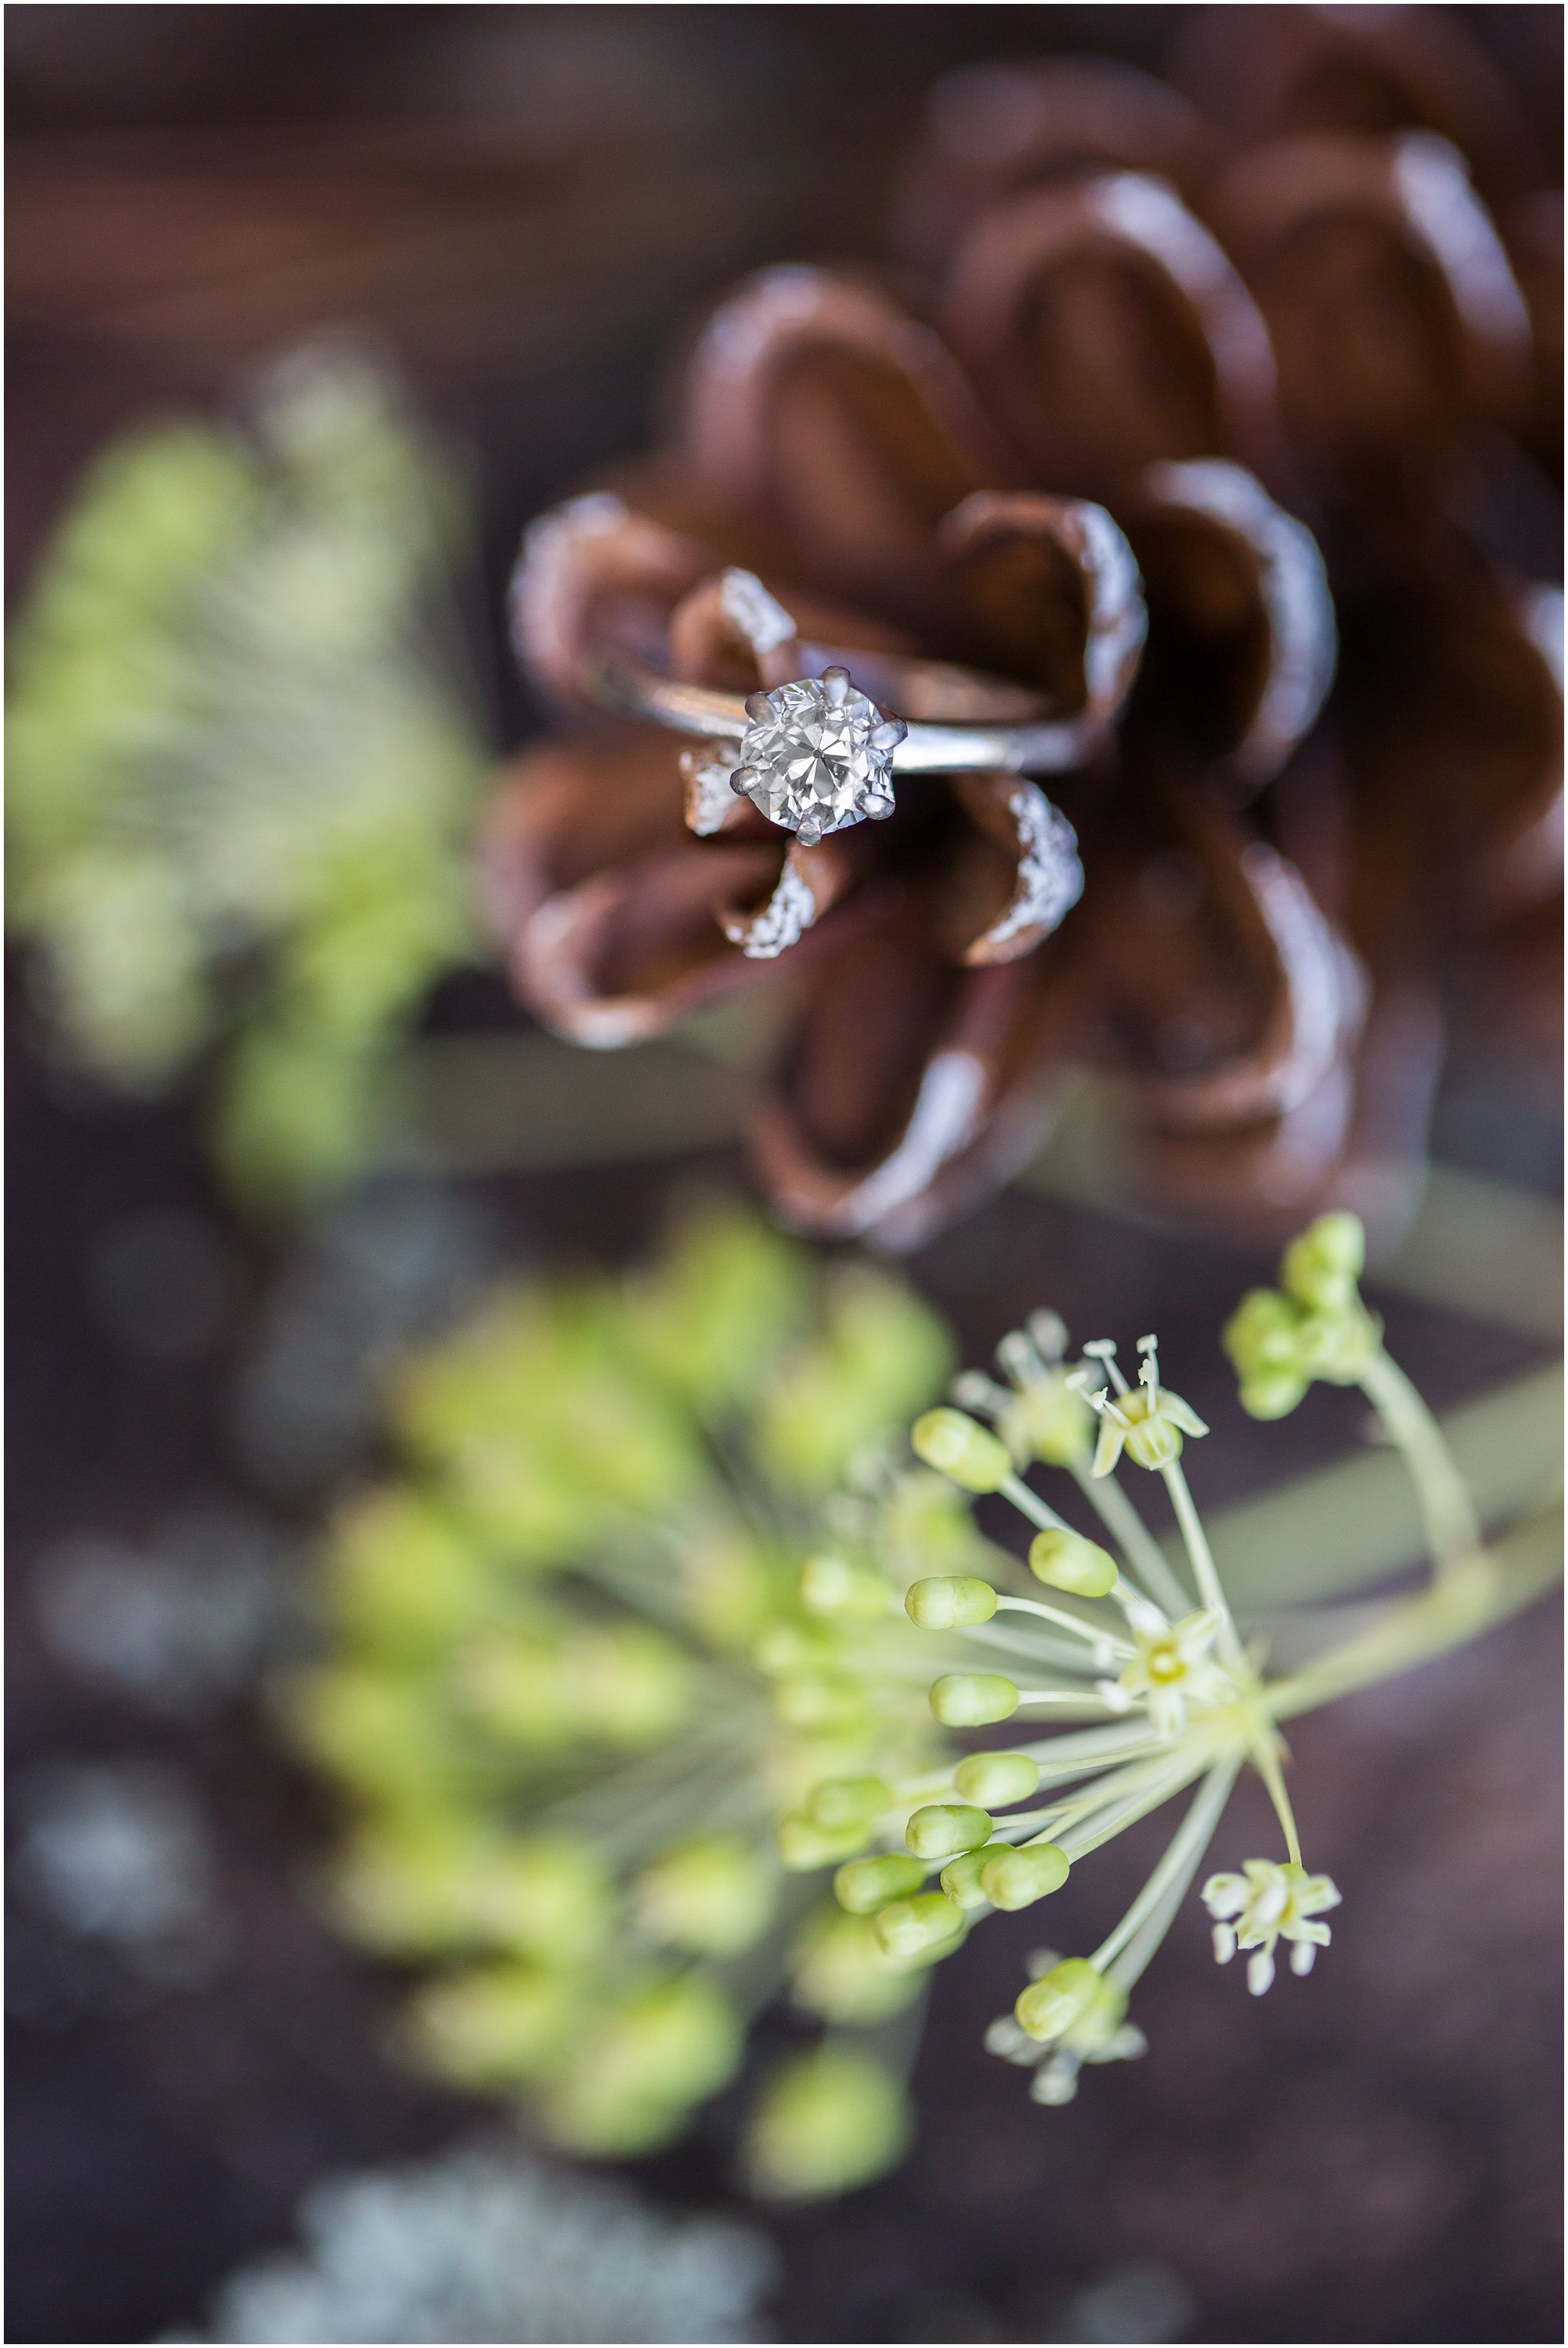 Engagement ring with pinecone and Queen Anne's Lace